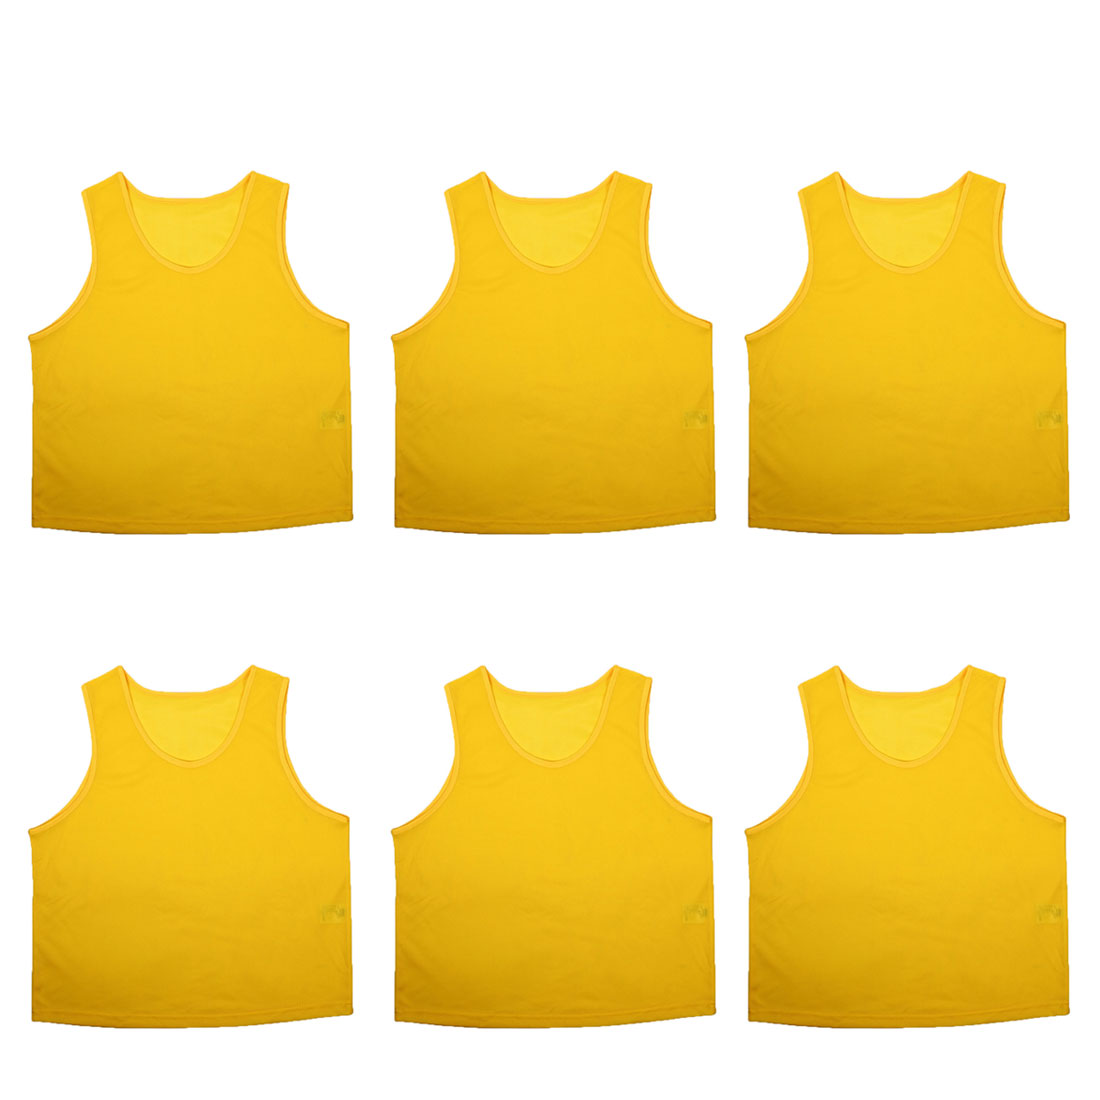 Training Vest Practice Soccer Bib 6pcs for Basketball Football Volleybal by Unique-Bargains